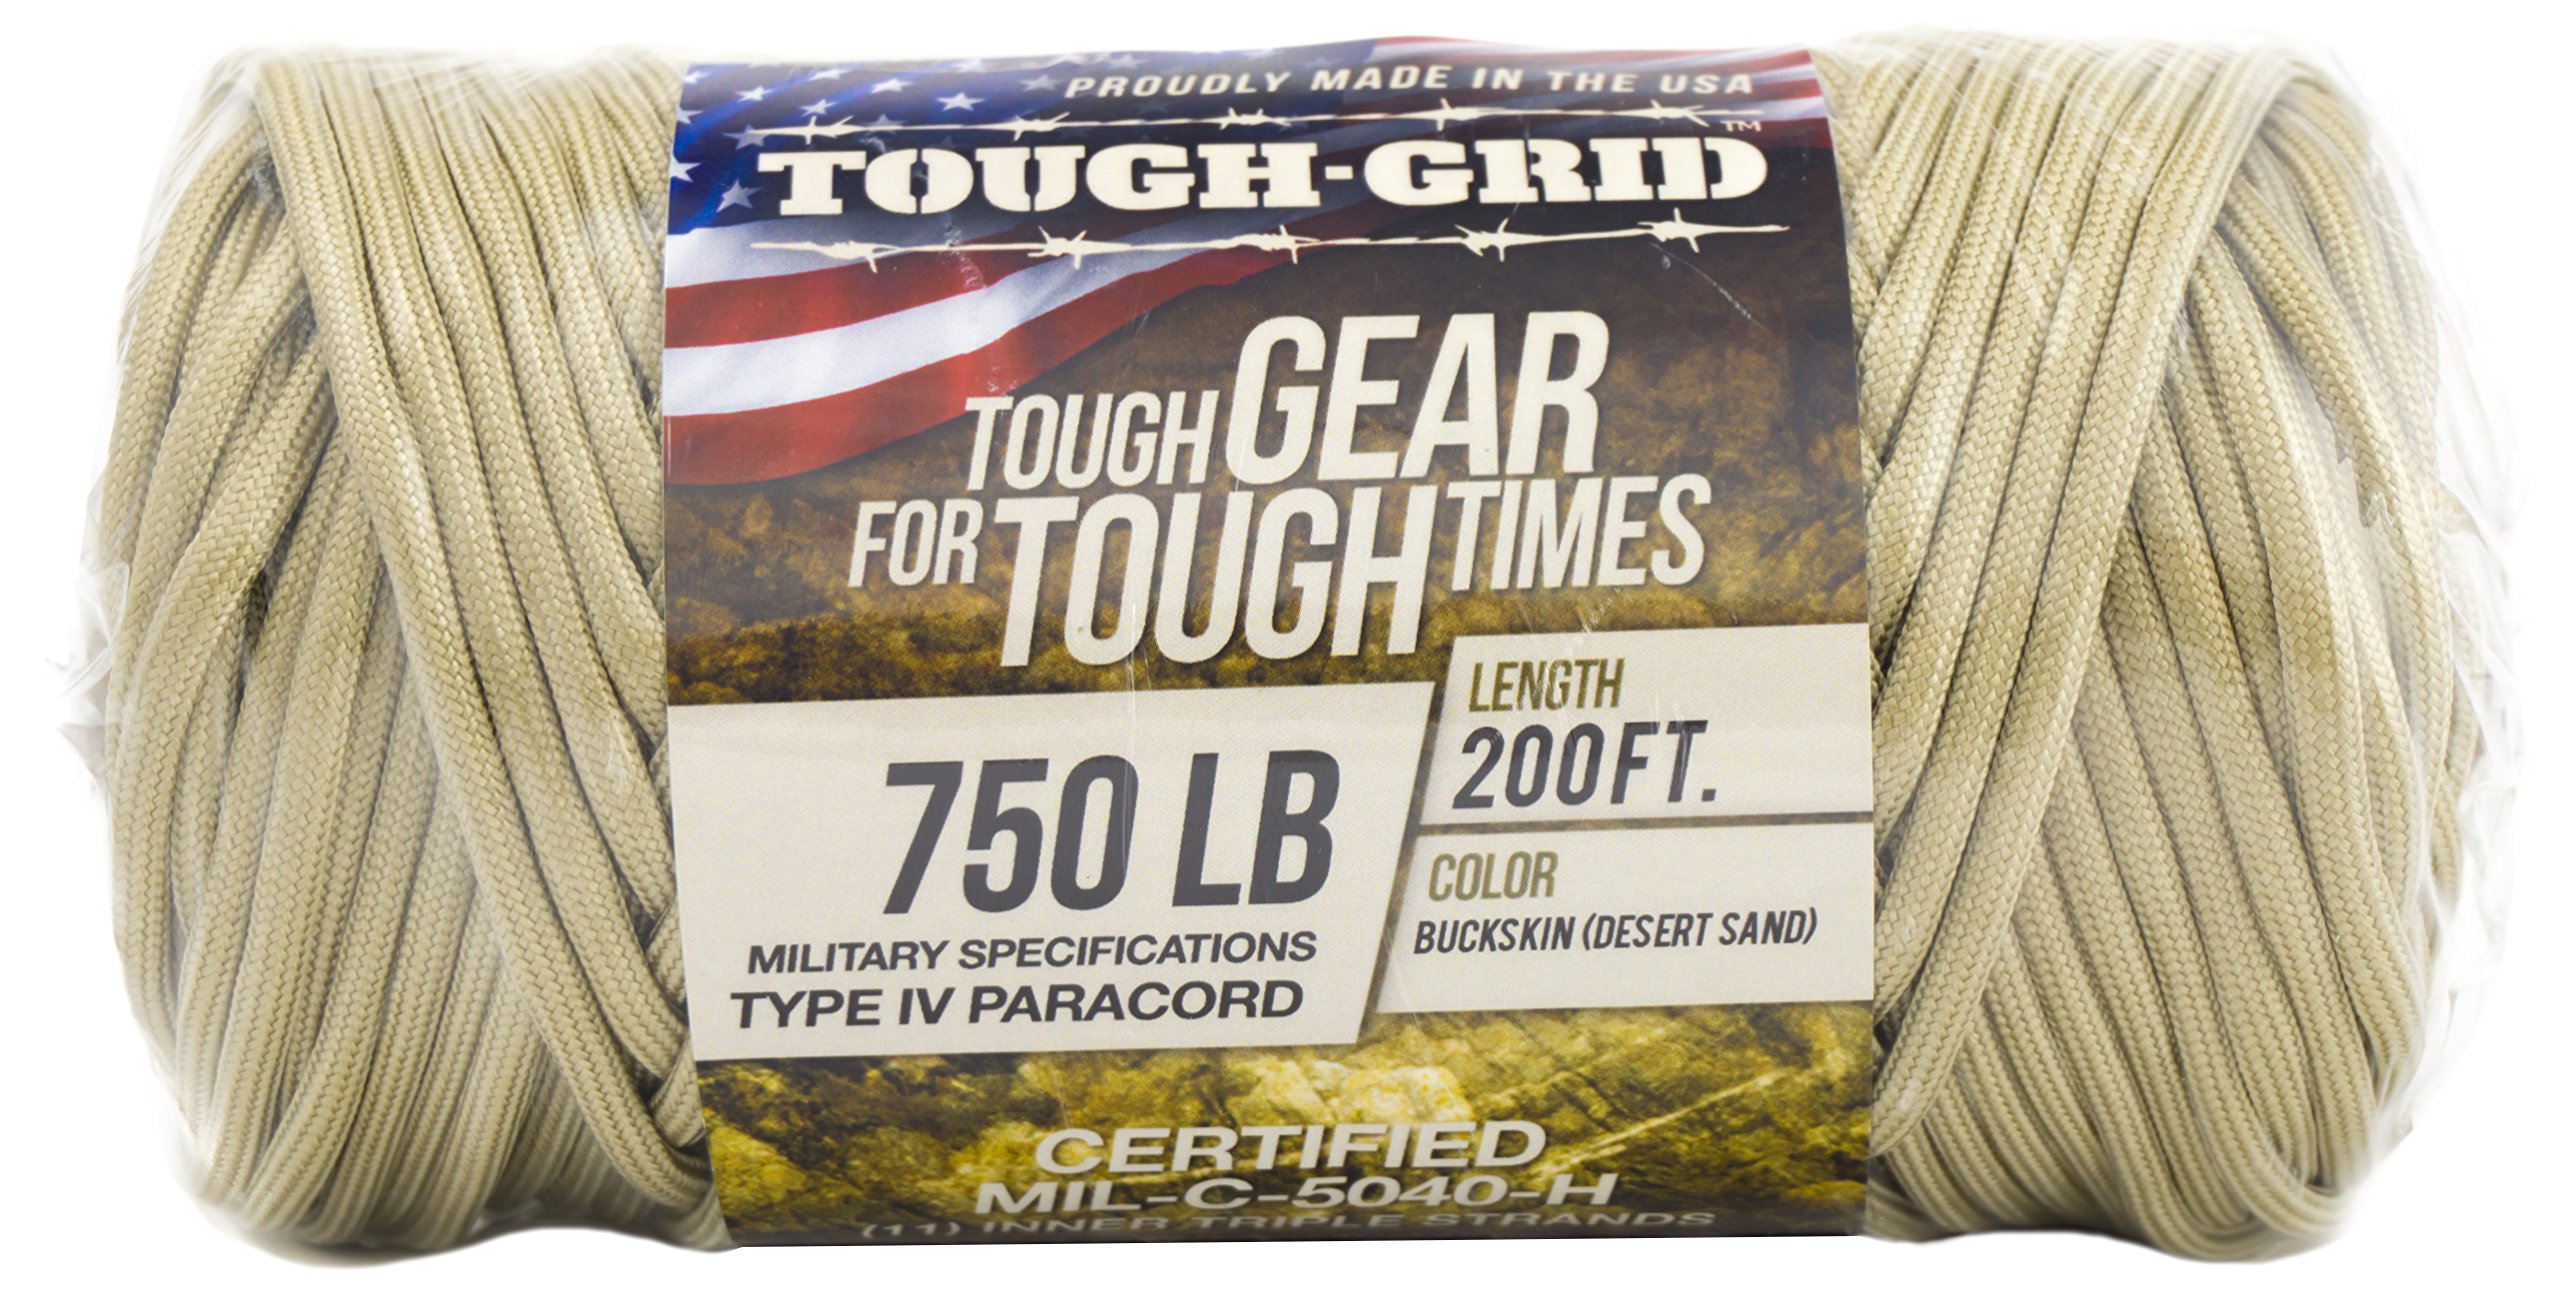 TOUGH-GRID 750lb Buckskin (Desert Sand) Paracord/Parachute Cord - Genuine Mil Spec Type IV 750lb Paracord Used by The US Military (MIl-C-5040-H) - 100% Nylon - Made in The USA. 500Ft. - Buckskin by TOUGH-GRID (Image #9)